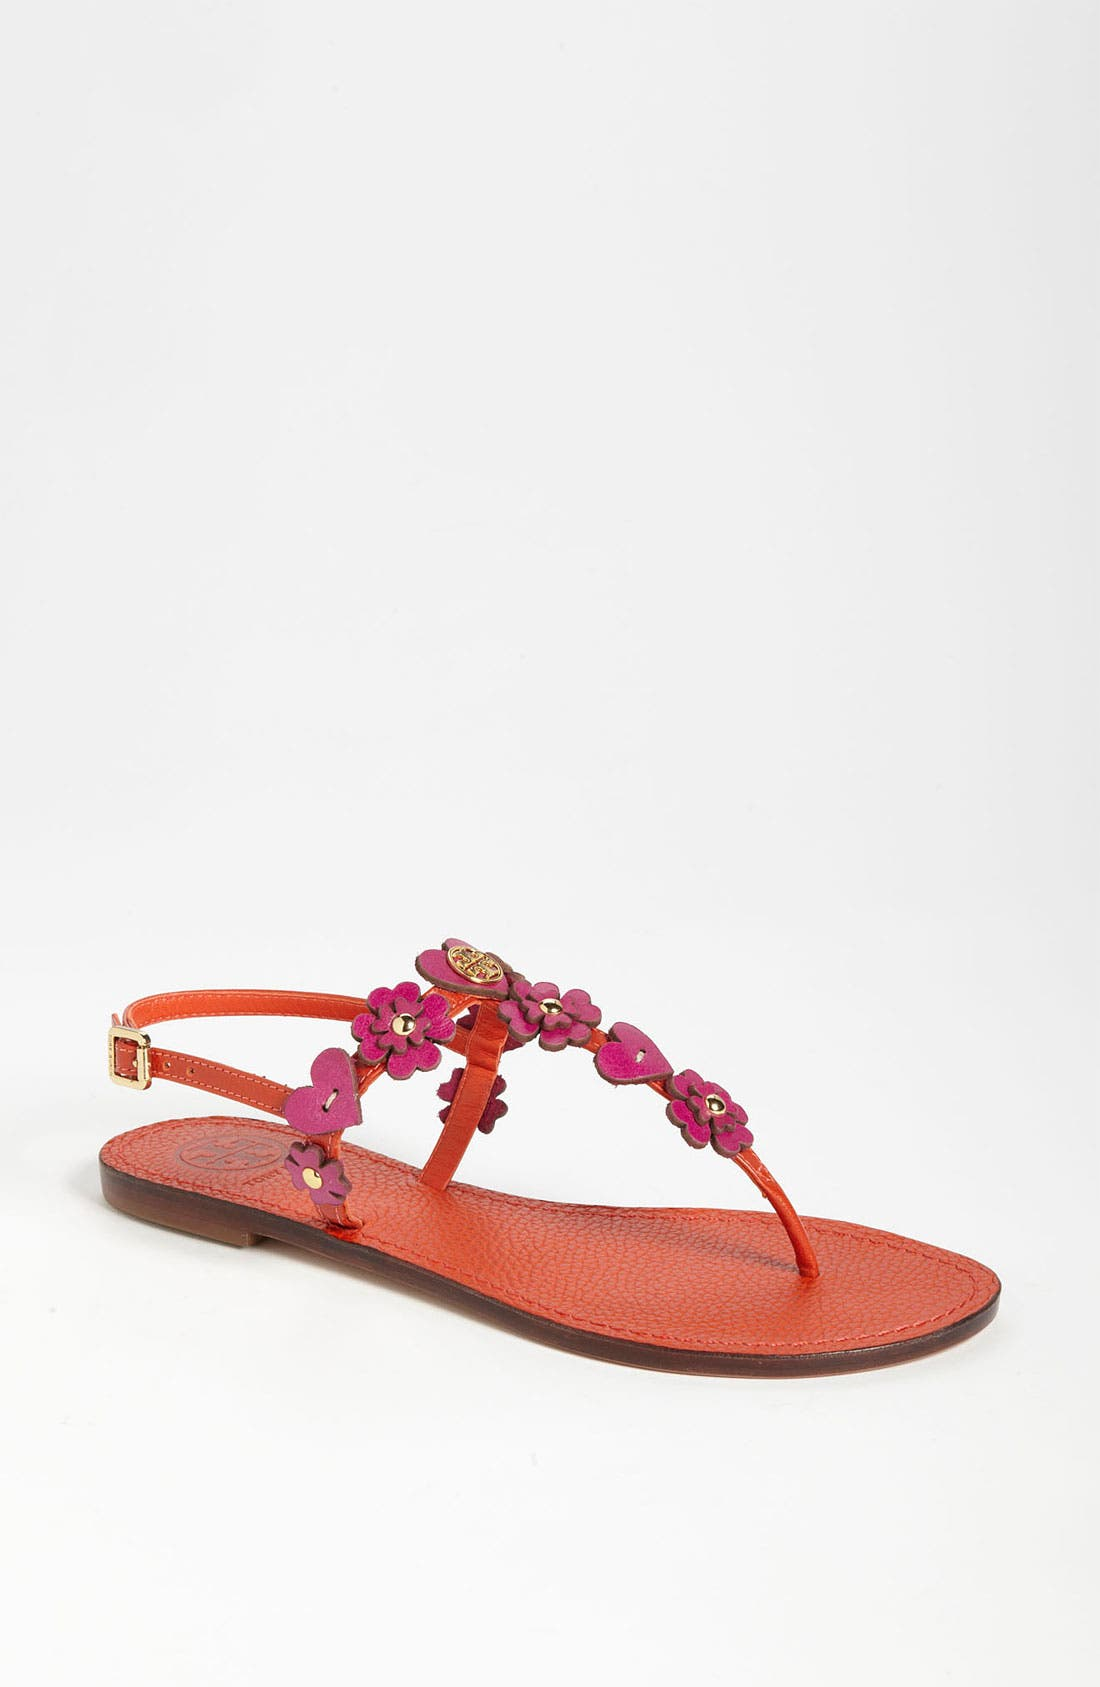 'Cori' Thong Sandal,                             Main thumbnail 1, color,                             Flame Red Party Fuchsia